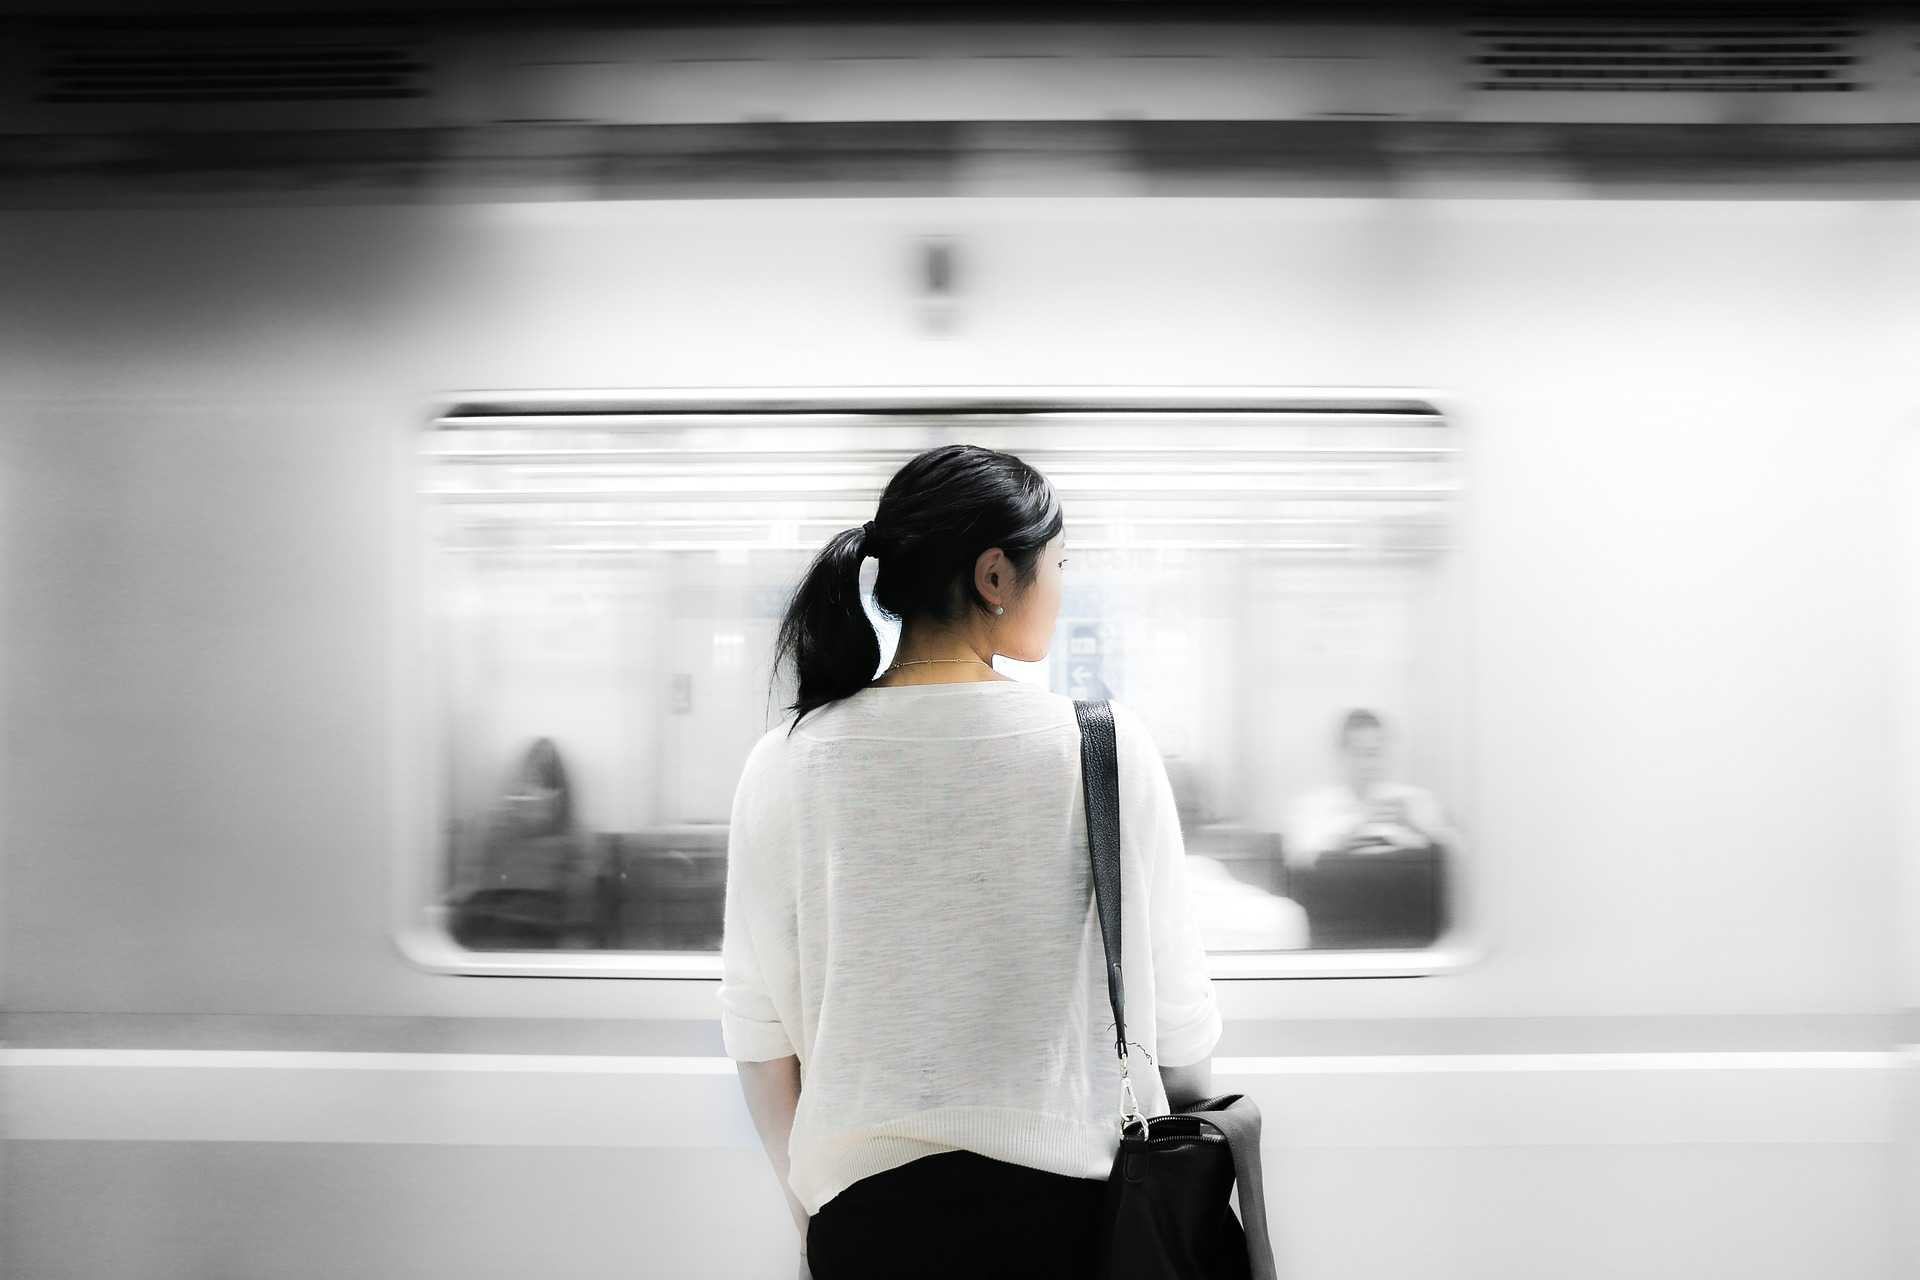 Woman in front of subway